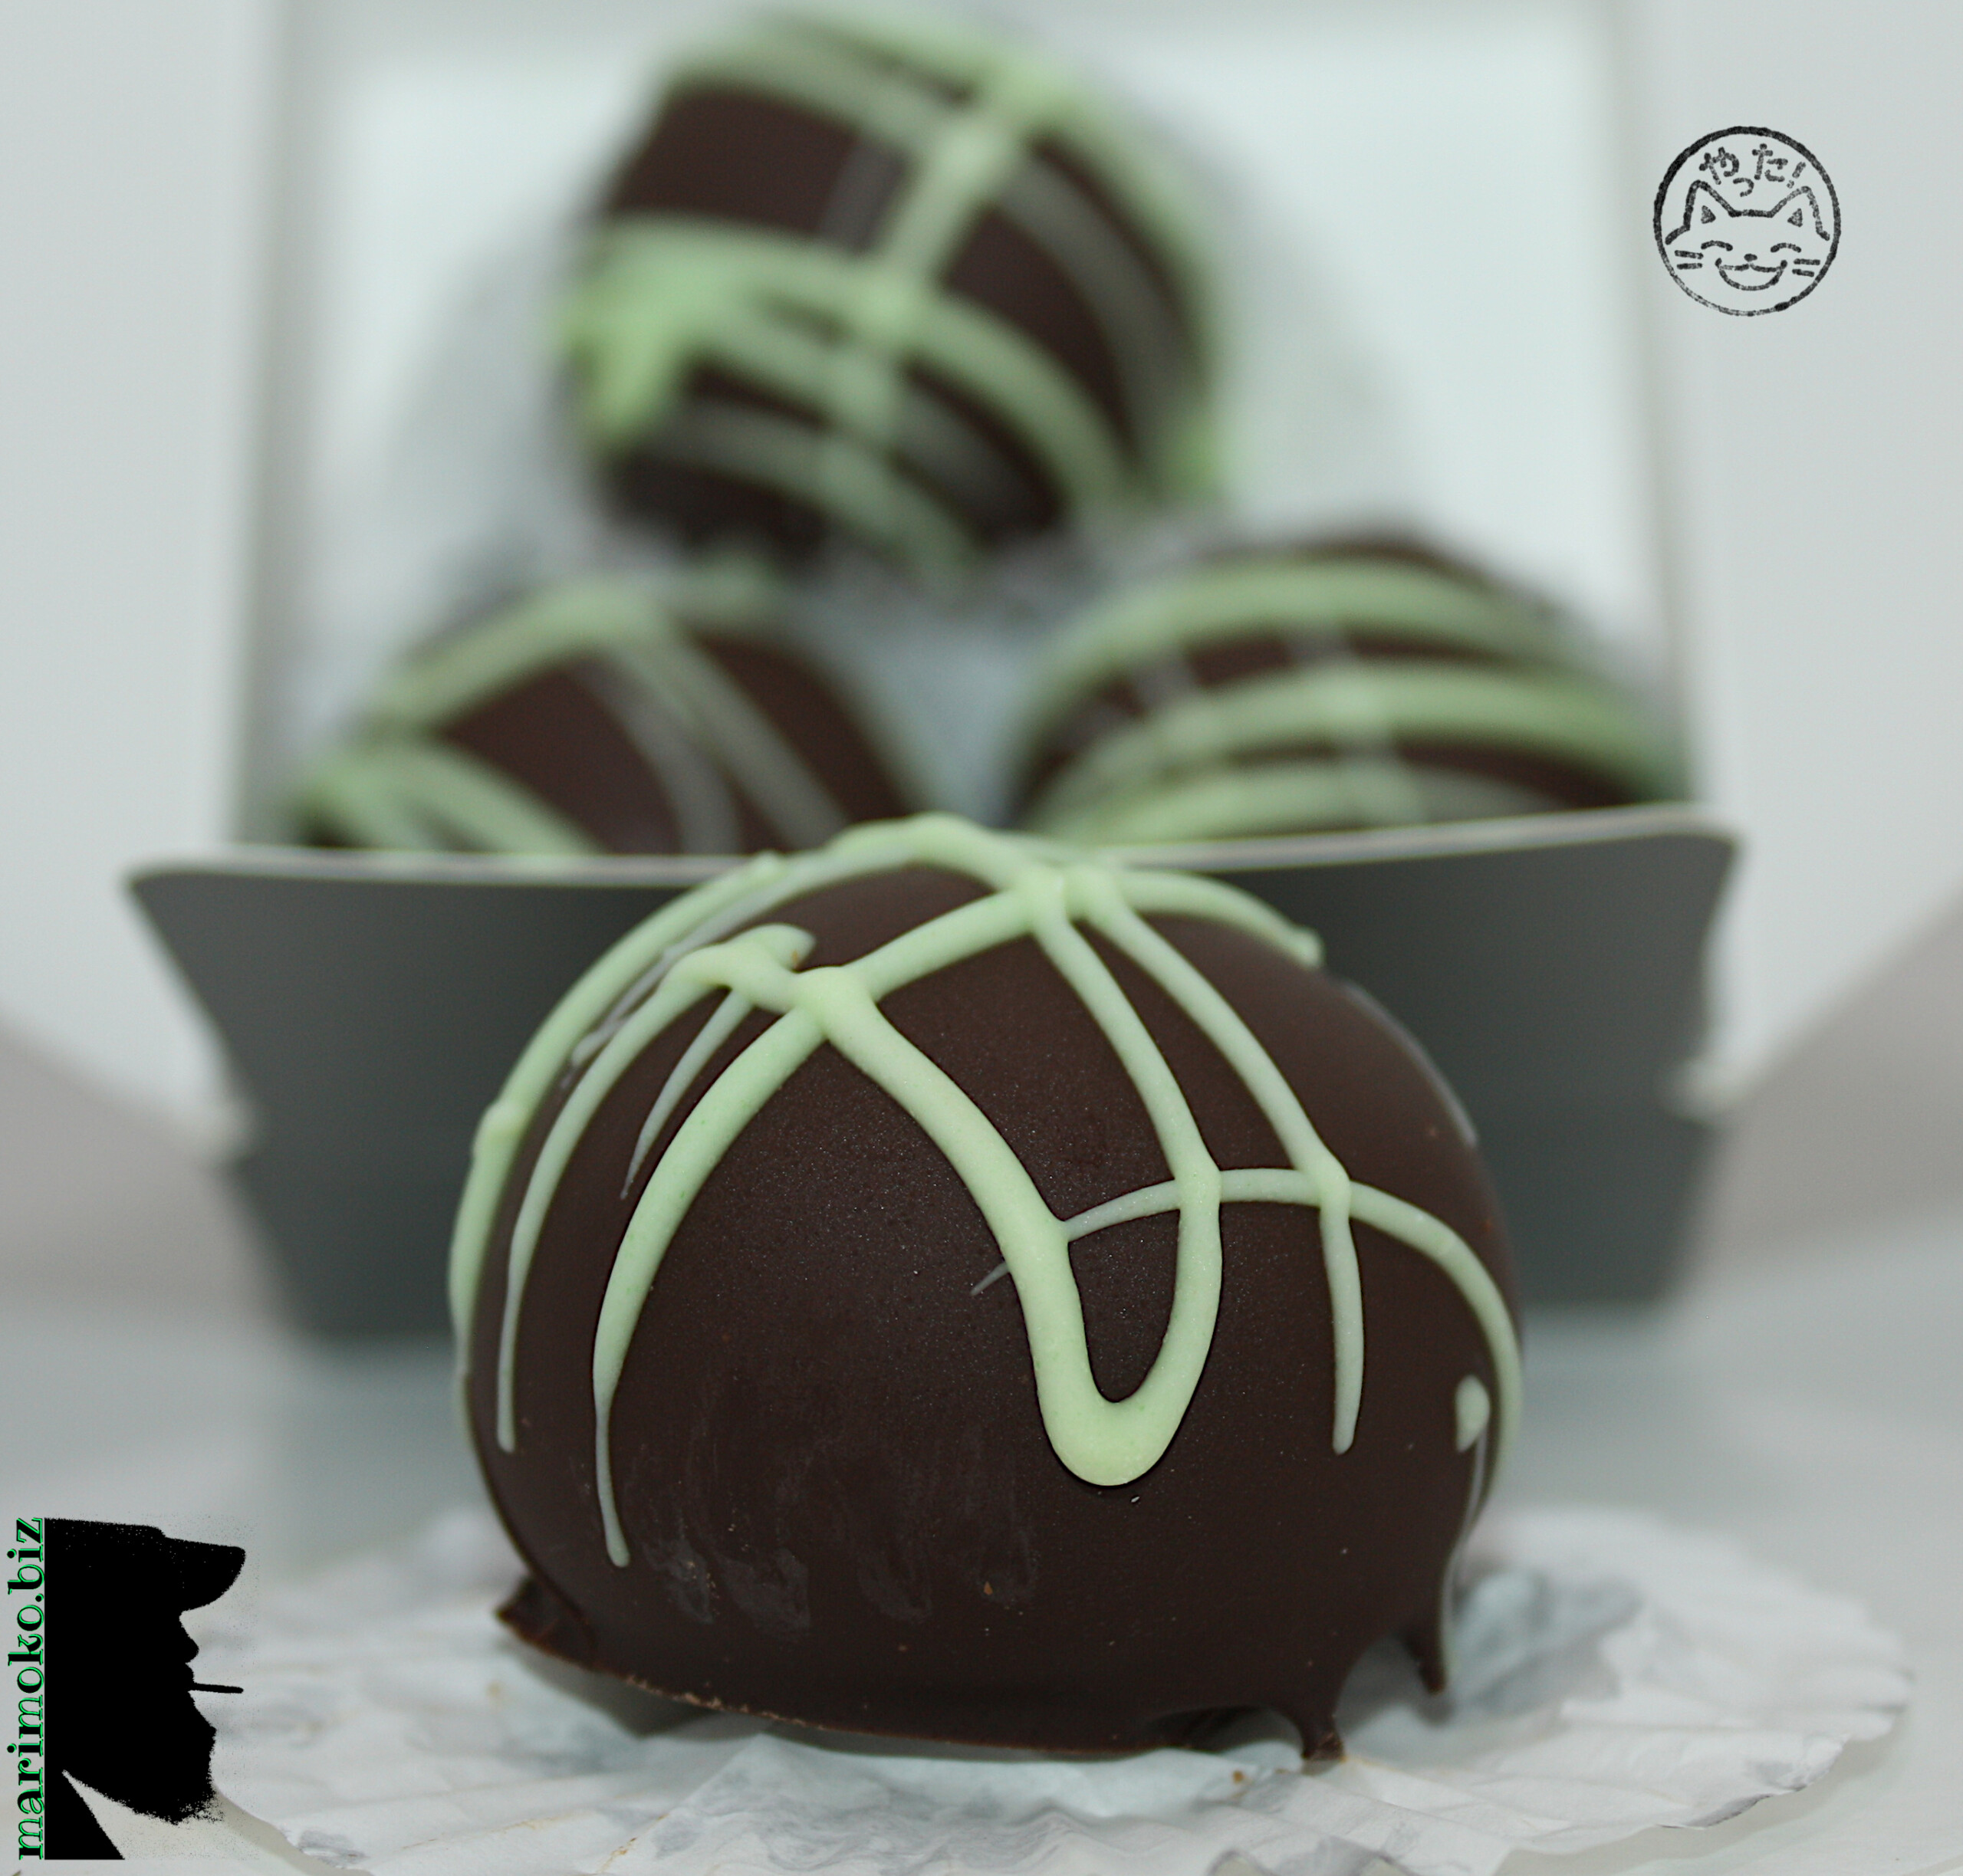 Turned Up Mint Truffles 125mg THC x4 From Entourage Edibles